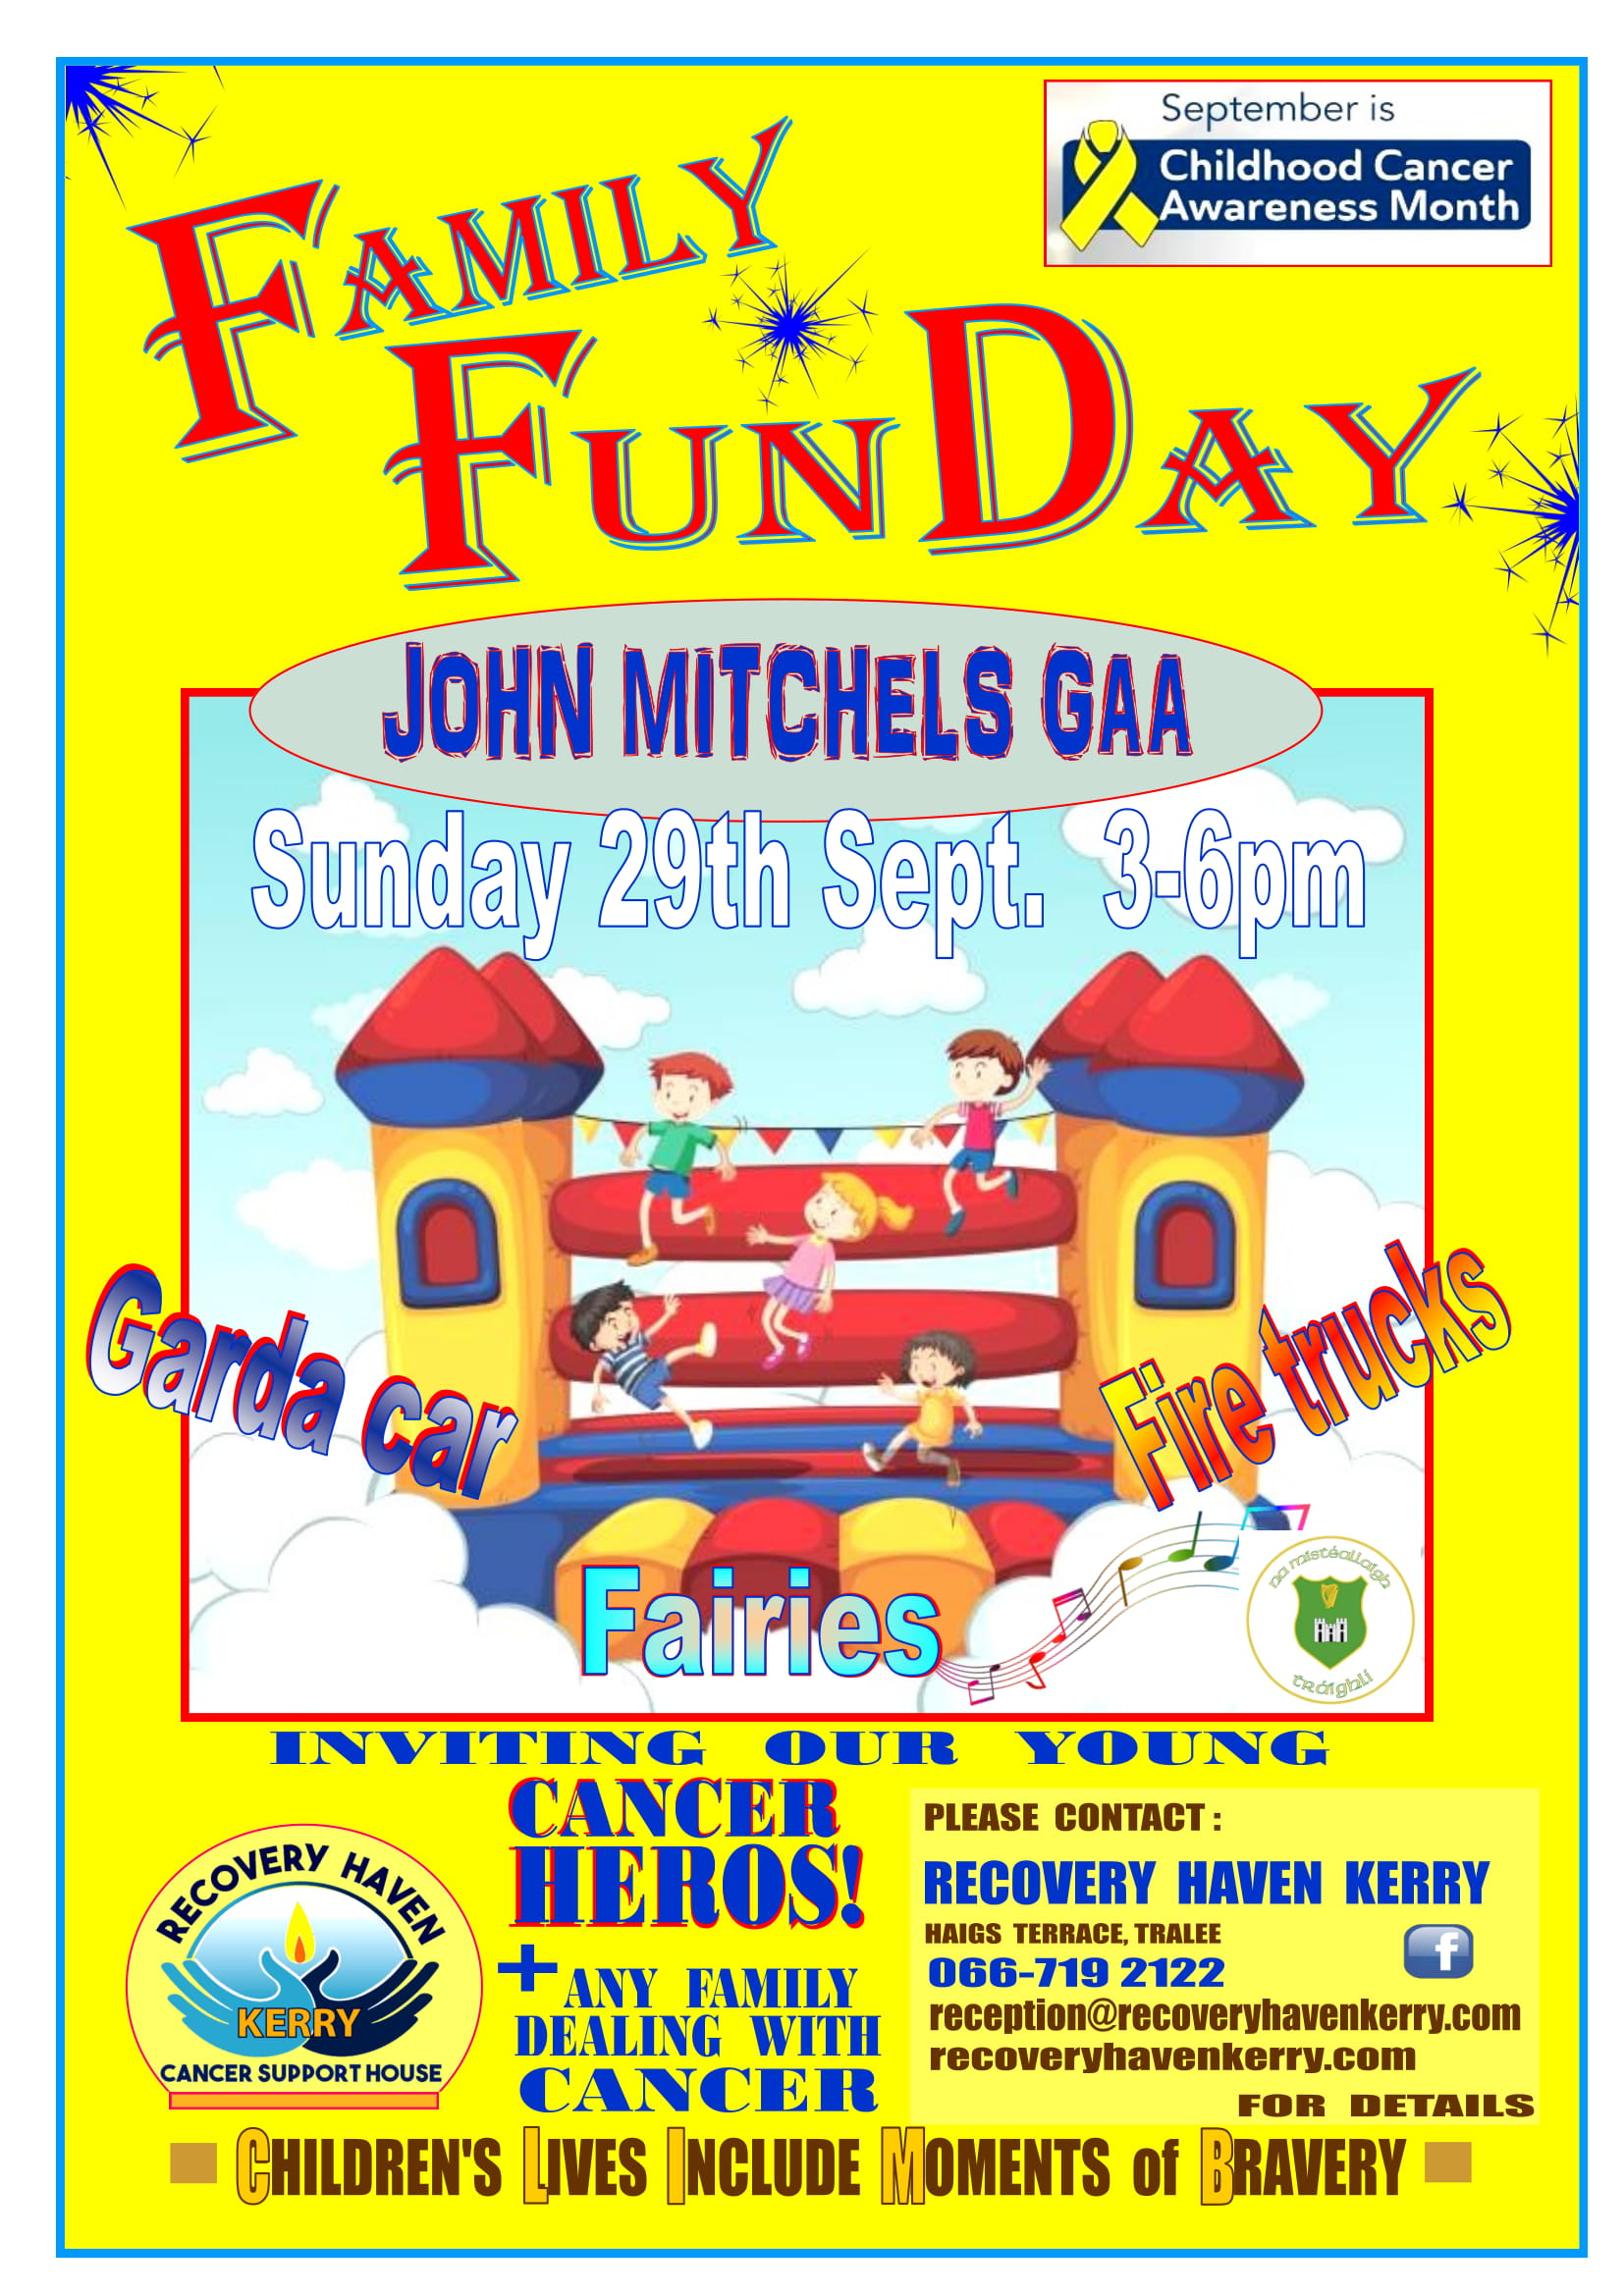 Little Heros Fun Day at Mitchels Gaa Gro